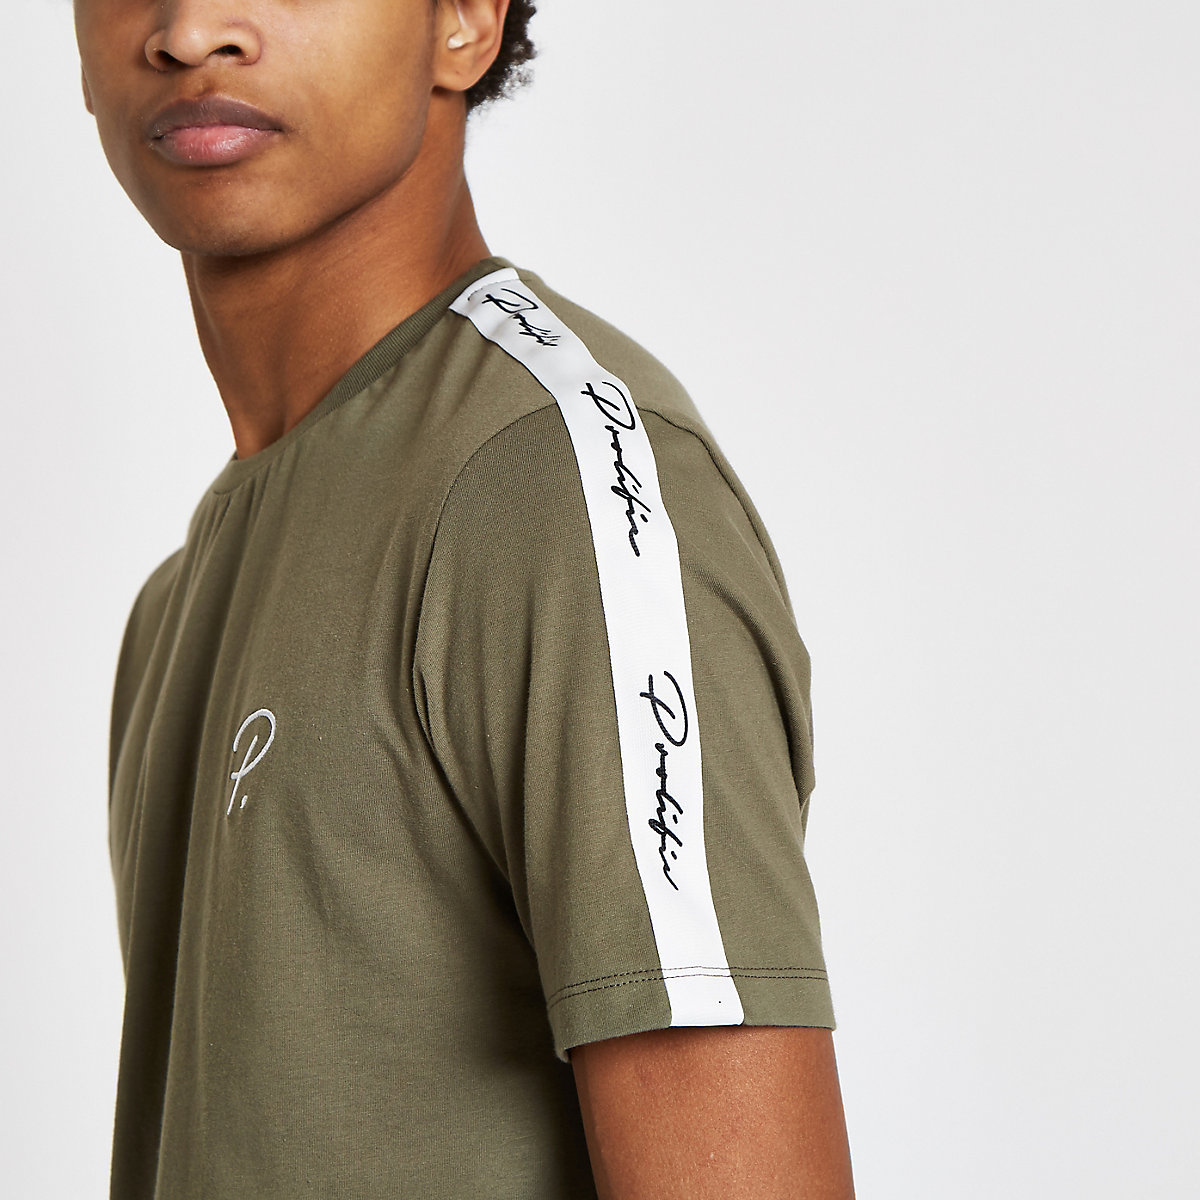 Khaki 'Prolific' short sleeve T-shirt